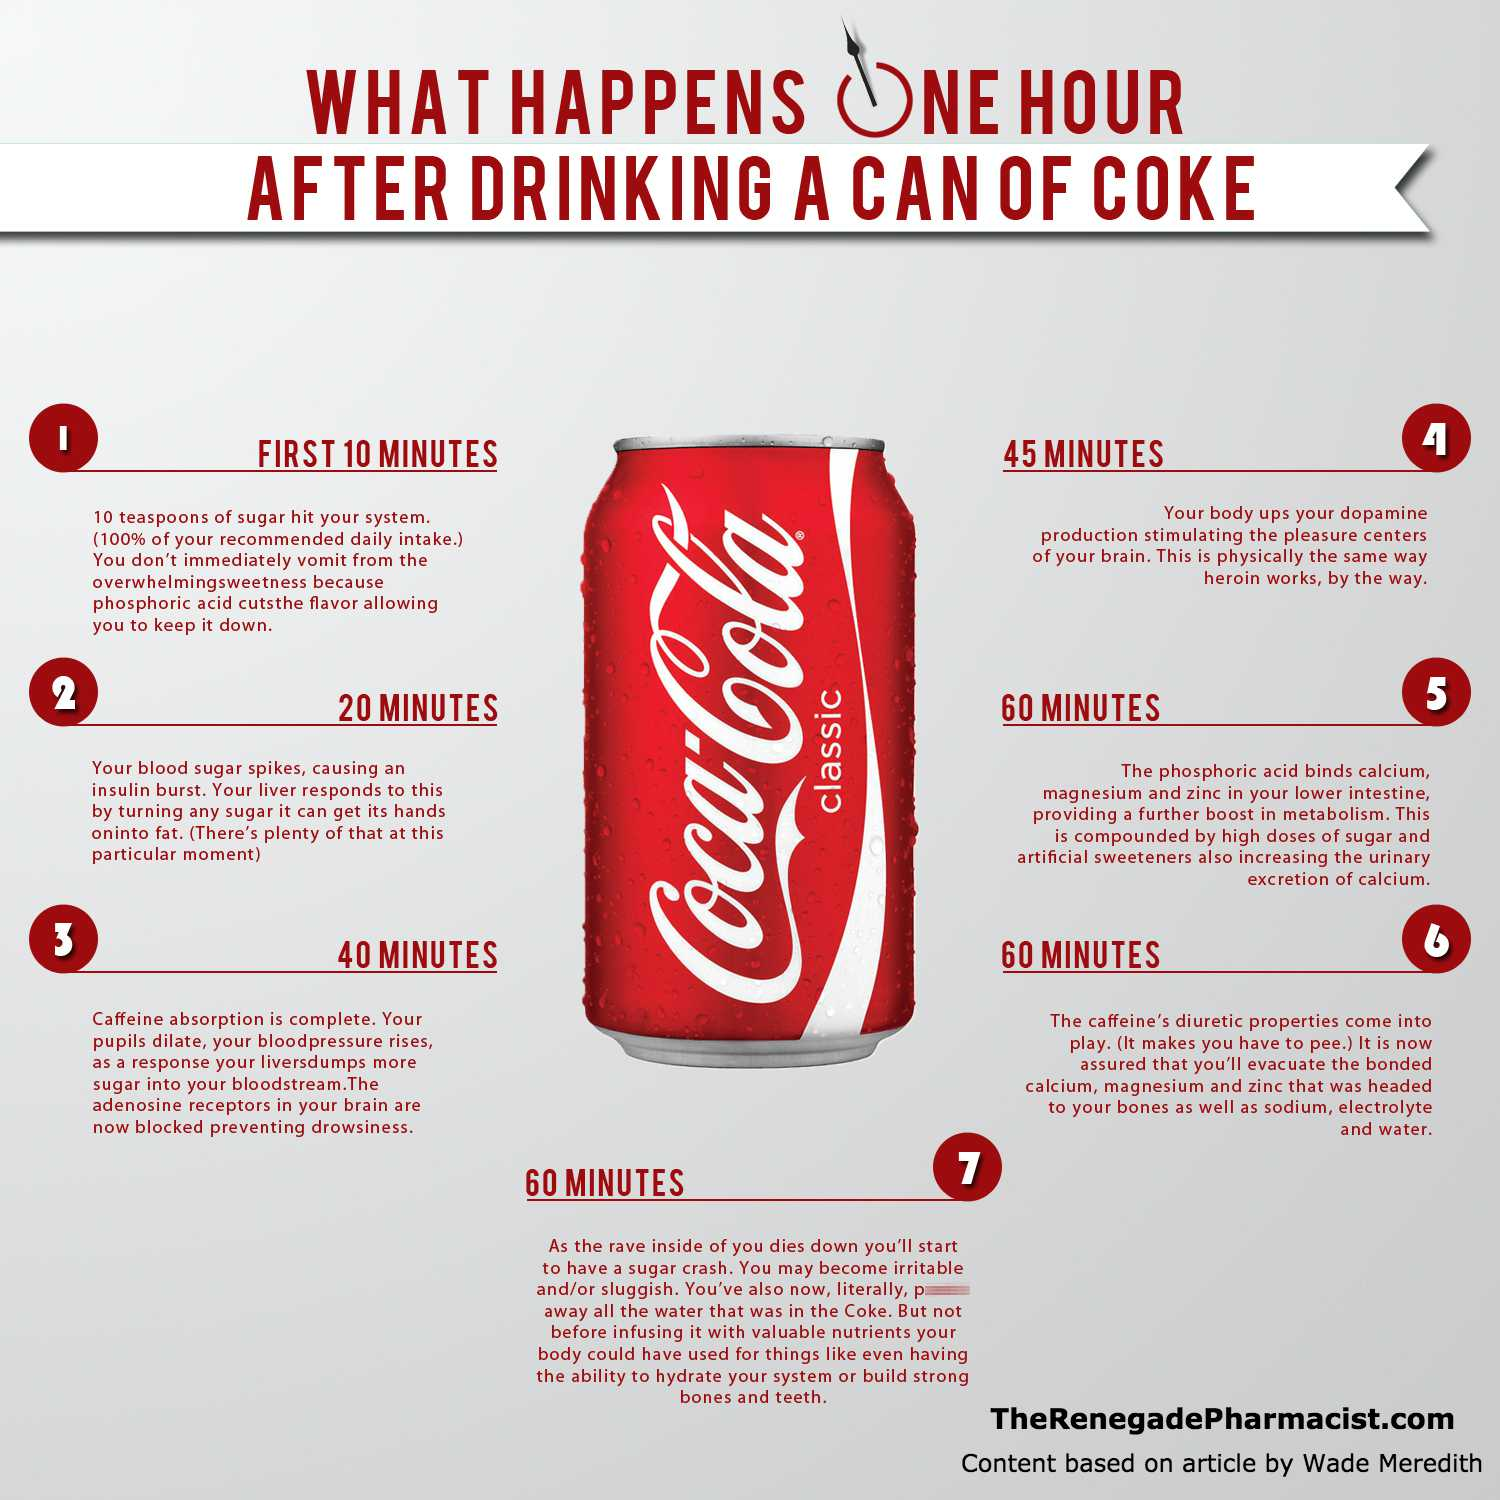 Why Coke (or Pepsi) is Not Bad for Health? 1